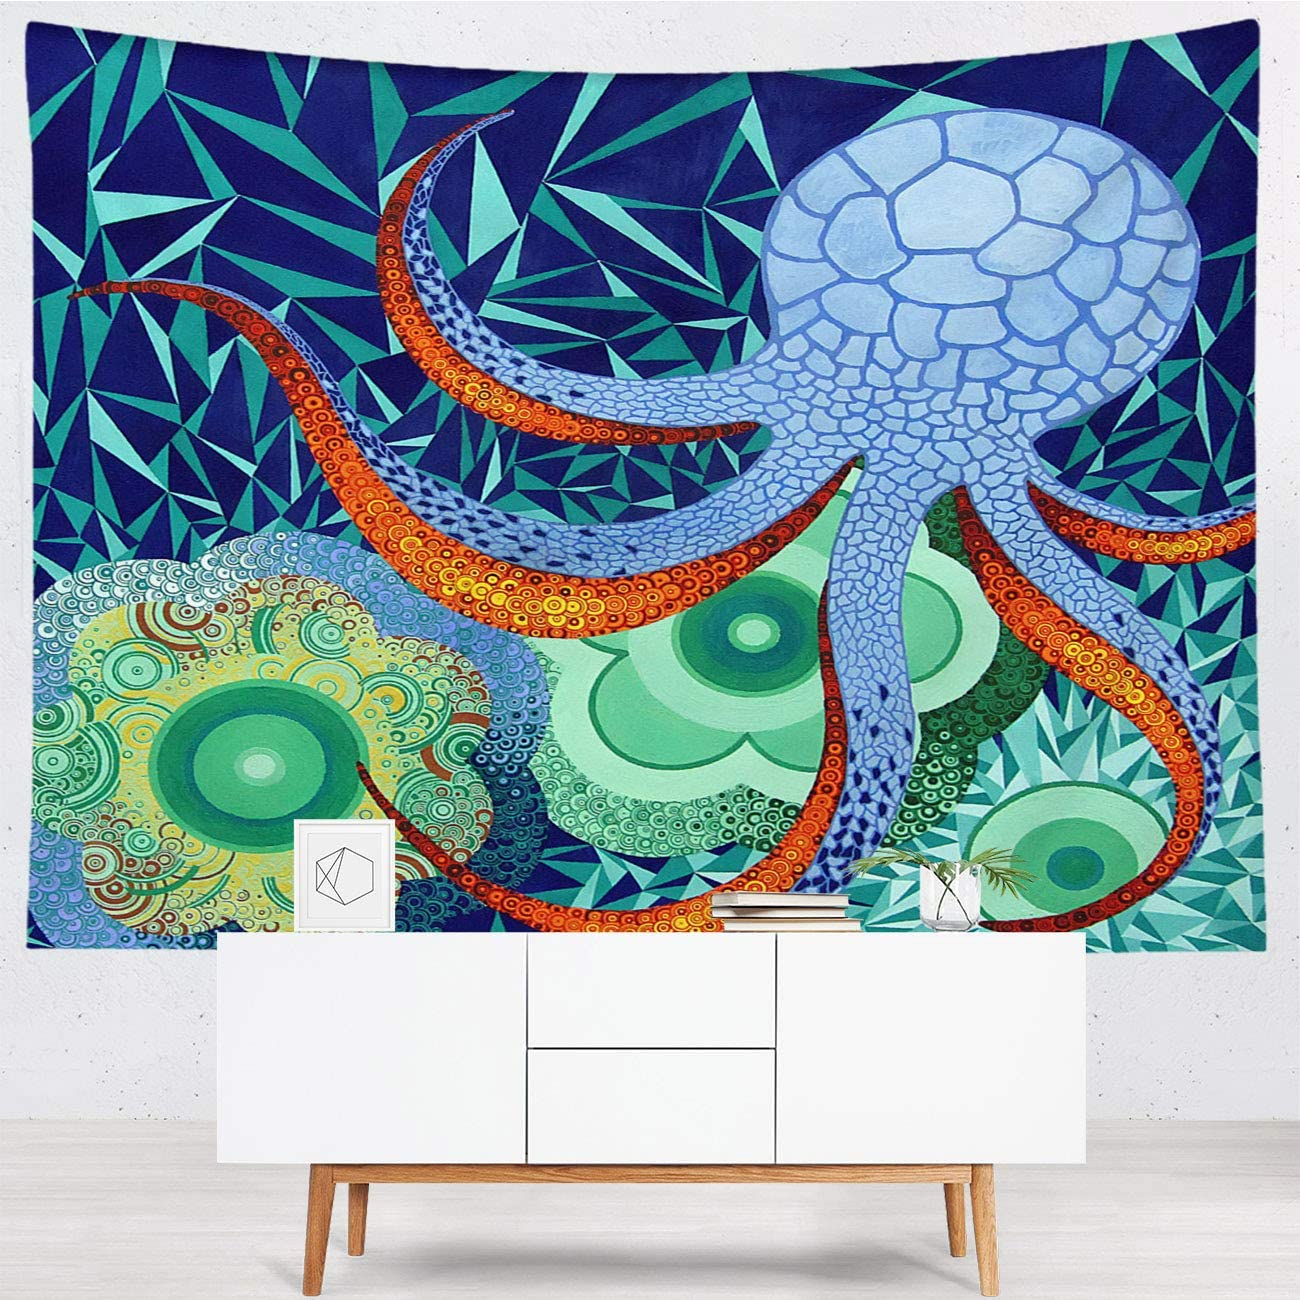 Octopus Hanging Wall Tapestries, Polyester/Thin Tapestry,Abstract Octopus Garden,Fashion Wall Tapestry for Dorm Bedroom Living Room,80x60 in